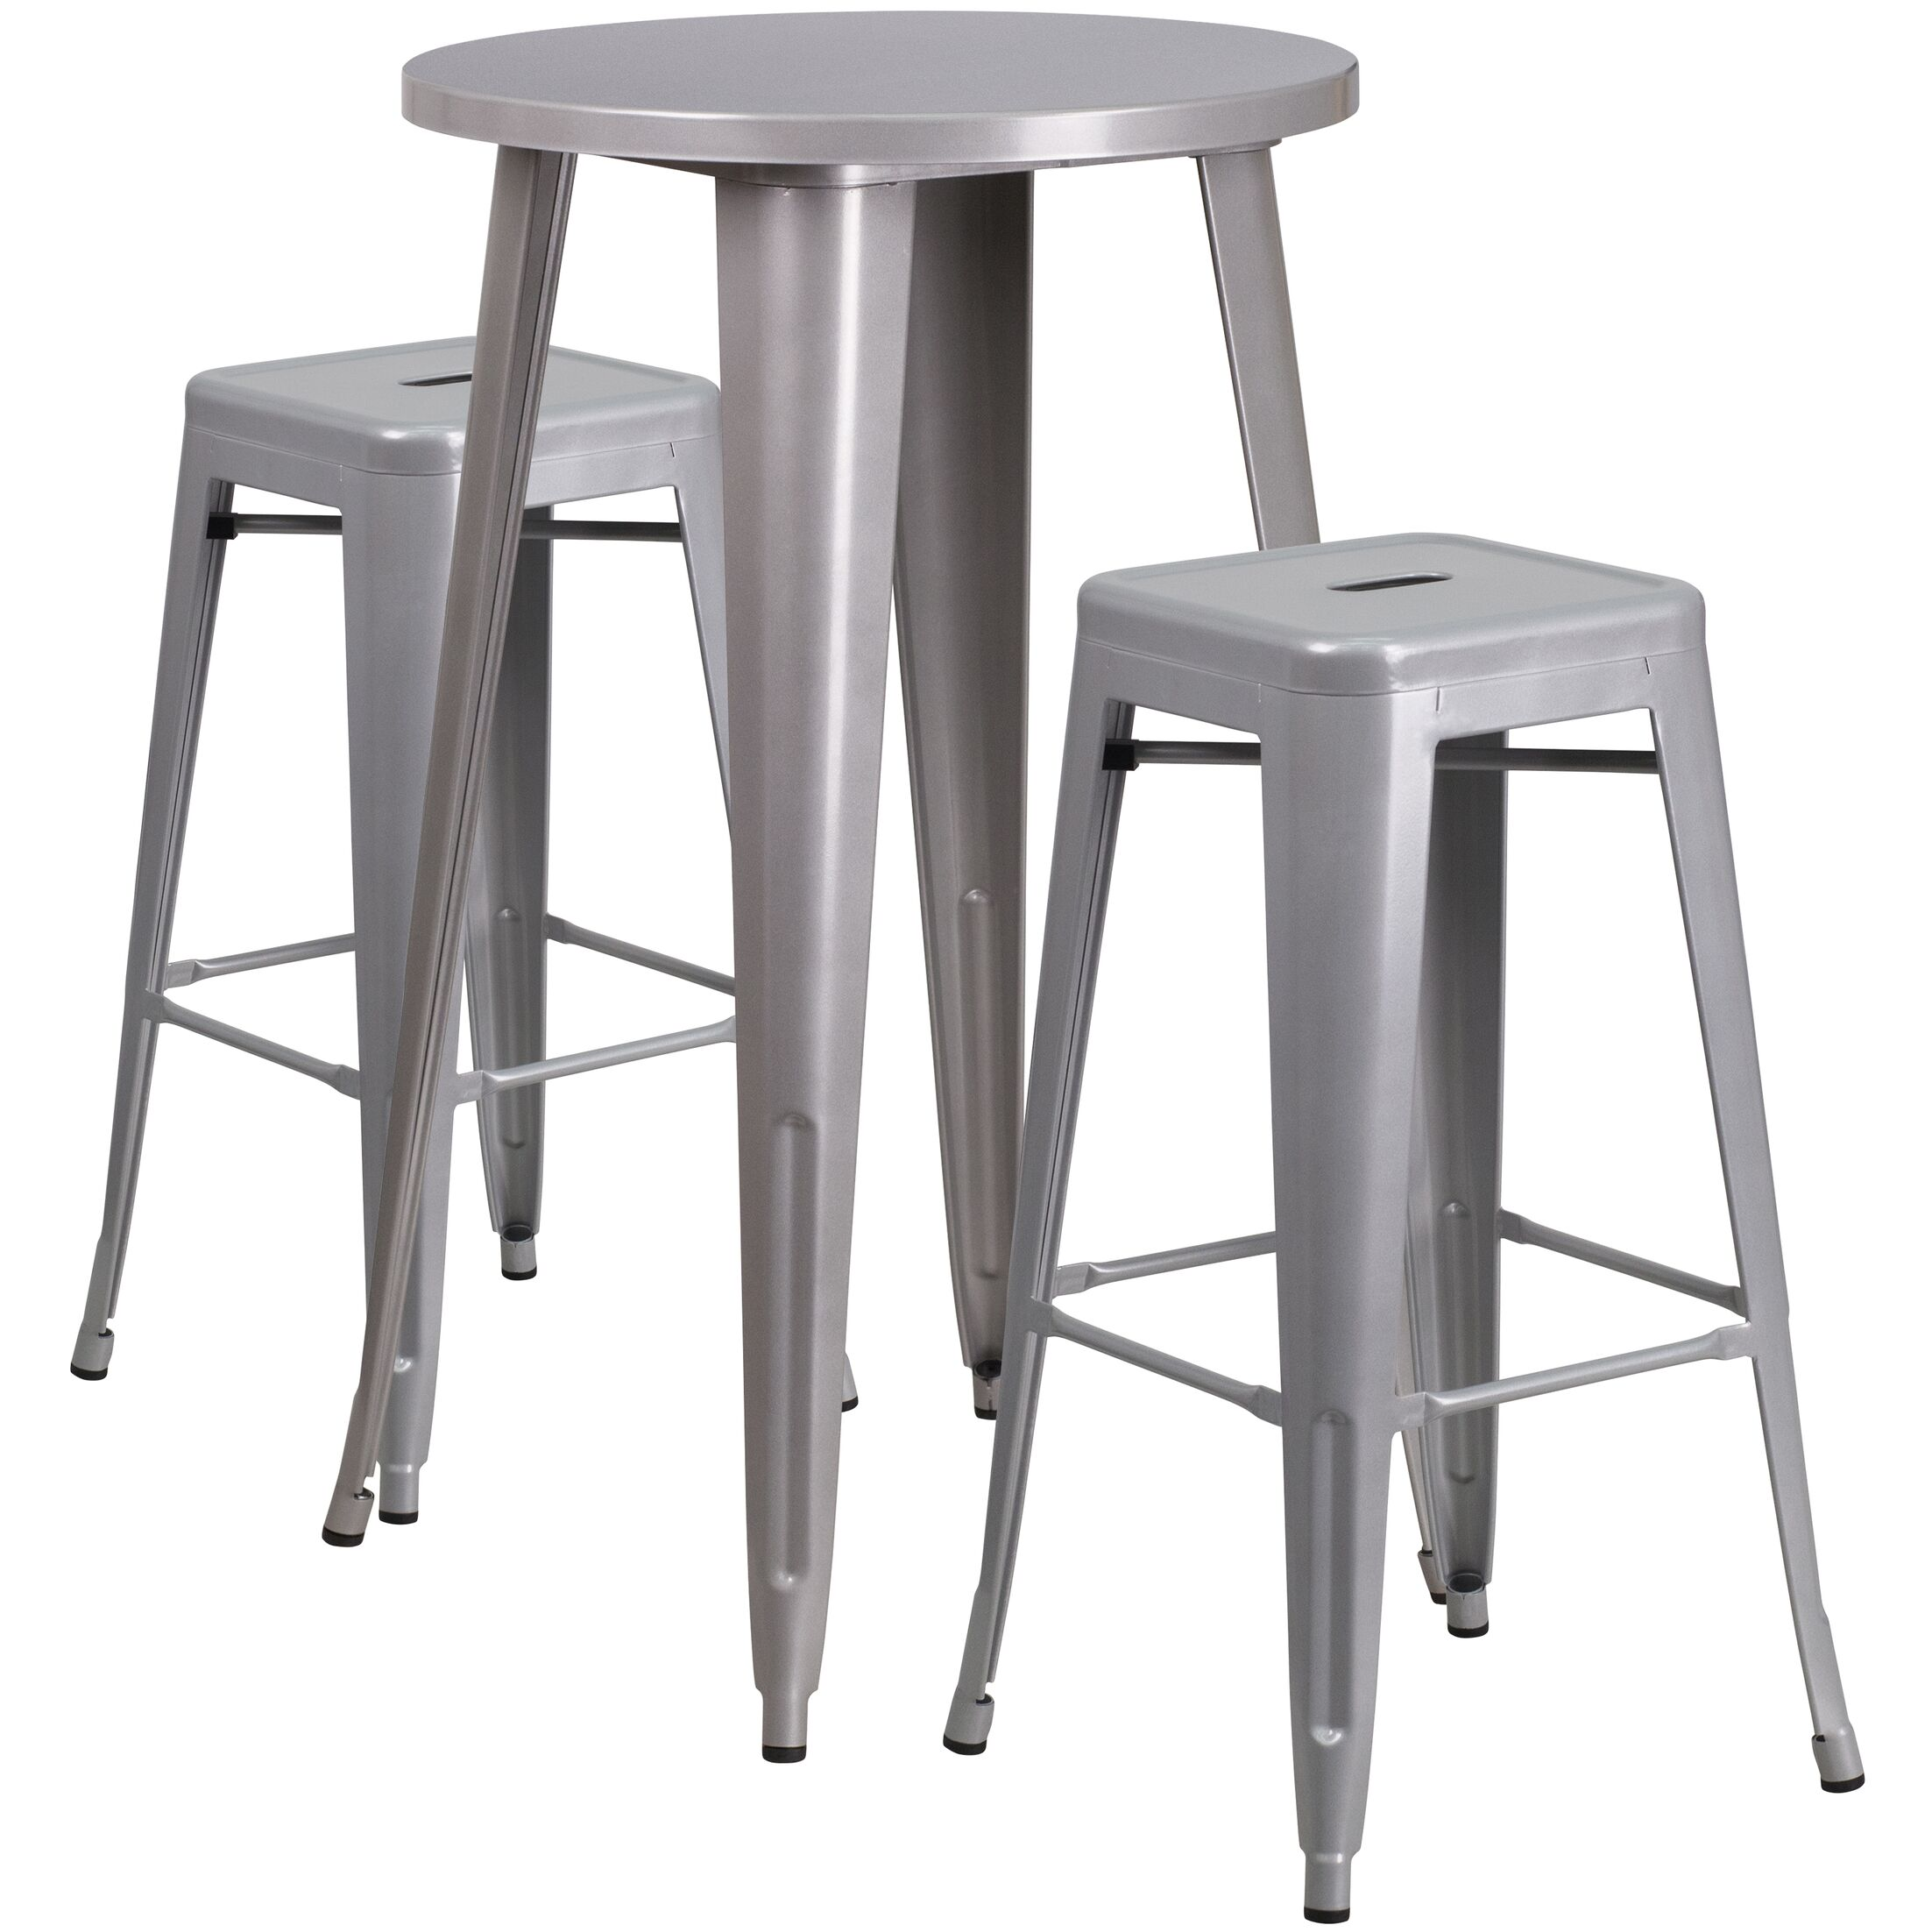 Mcmorrow 3 Piece Bar Height Dining Set Color: Silver, Table Size: 41